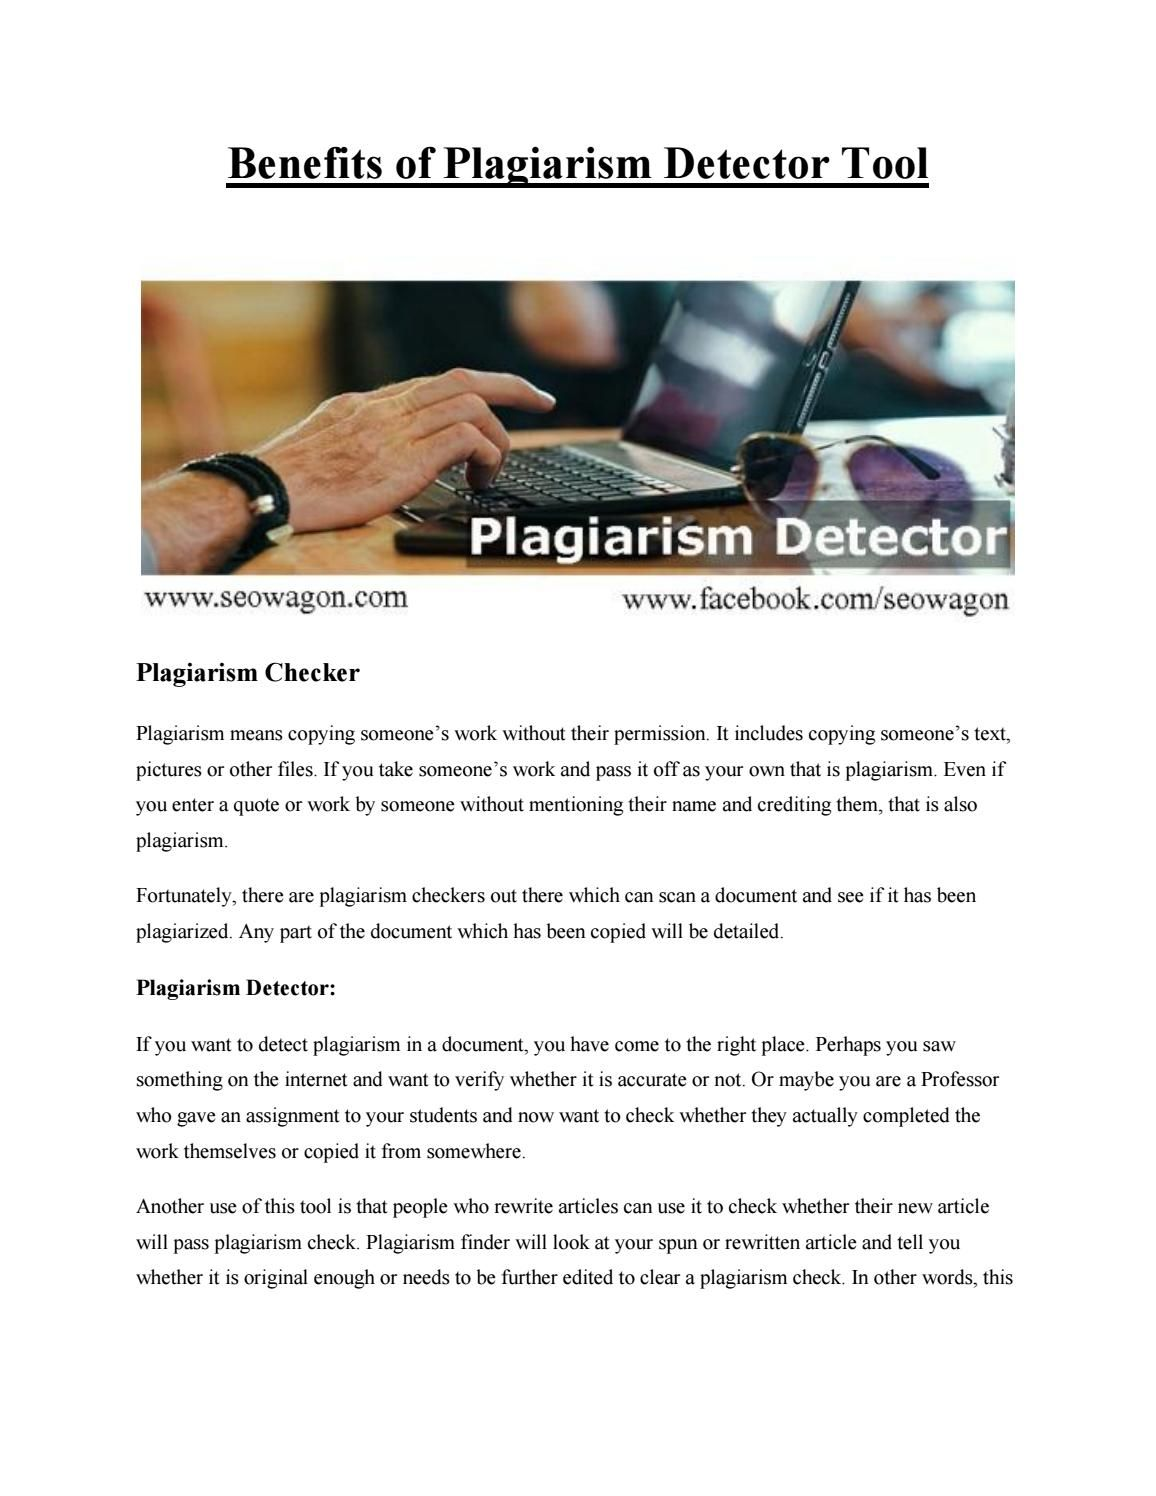 Sample Of Comparative Essay  Best Ideas About Plagiarism Detector Plagiarism  Best Ideas About  Plagiarism Detector Plagiarism Detector Online  Best Ideas About Check  Paper For  Essay On Autism also How To Write A Critique Essay Example How To Check If Essay Is Plagiarized  Best Ideas About Plagiarism  Cruelty Towards Animals Essay